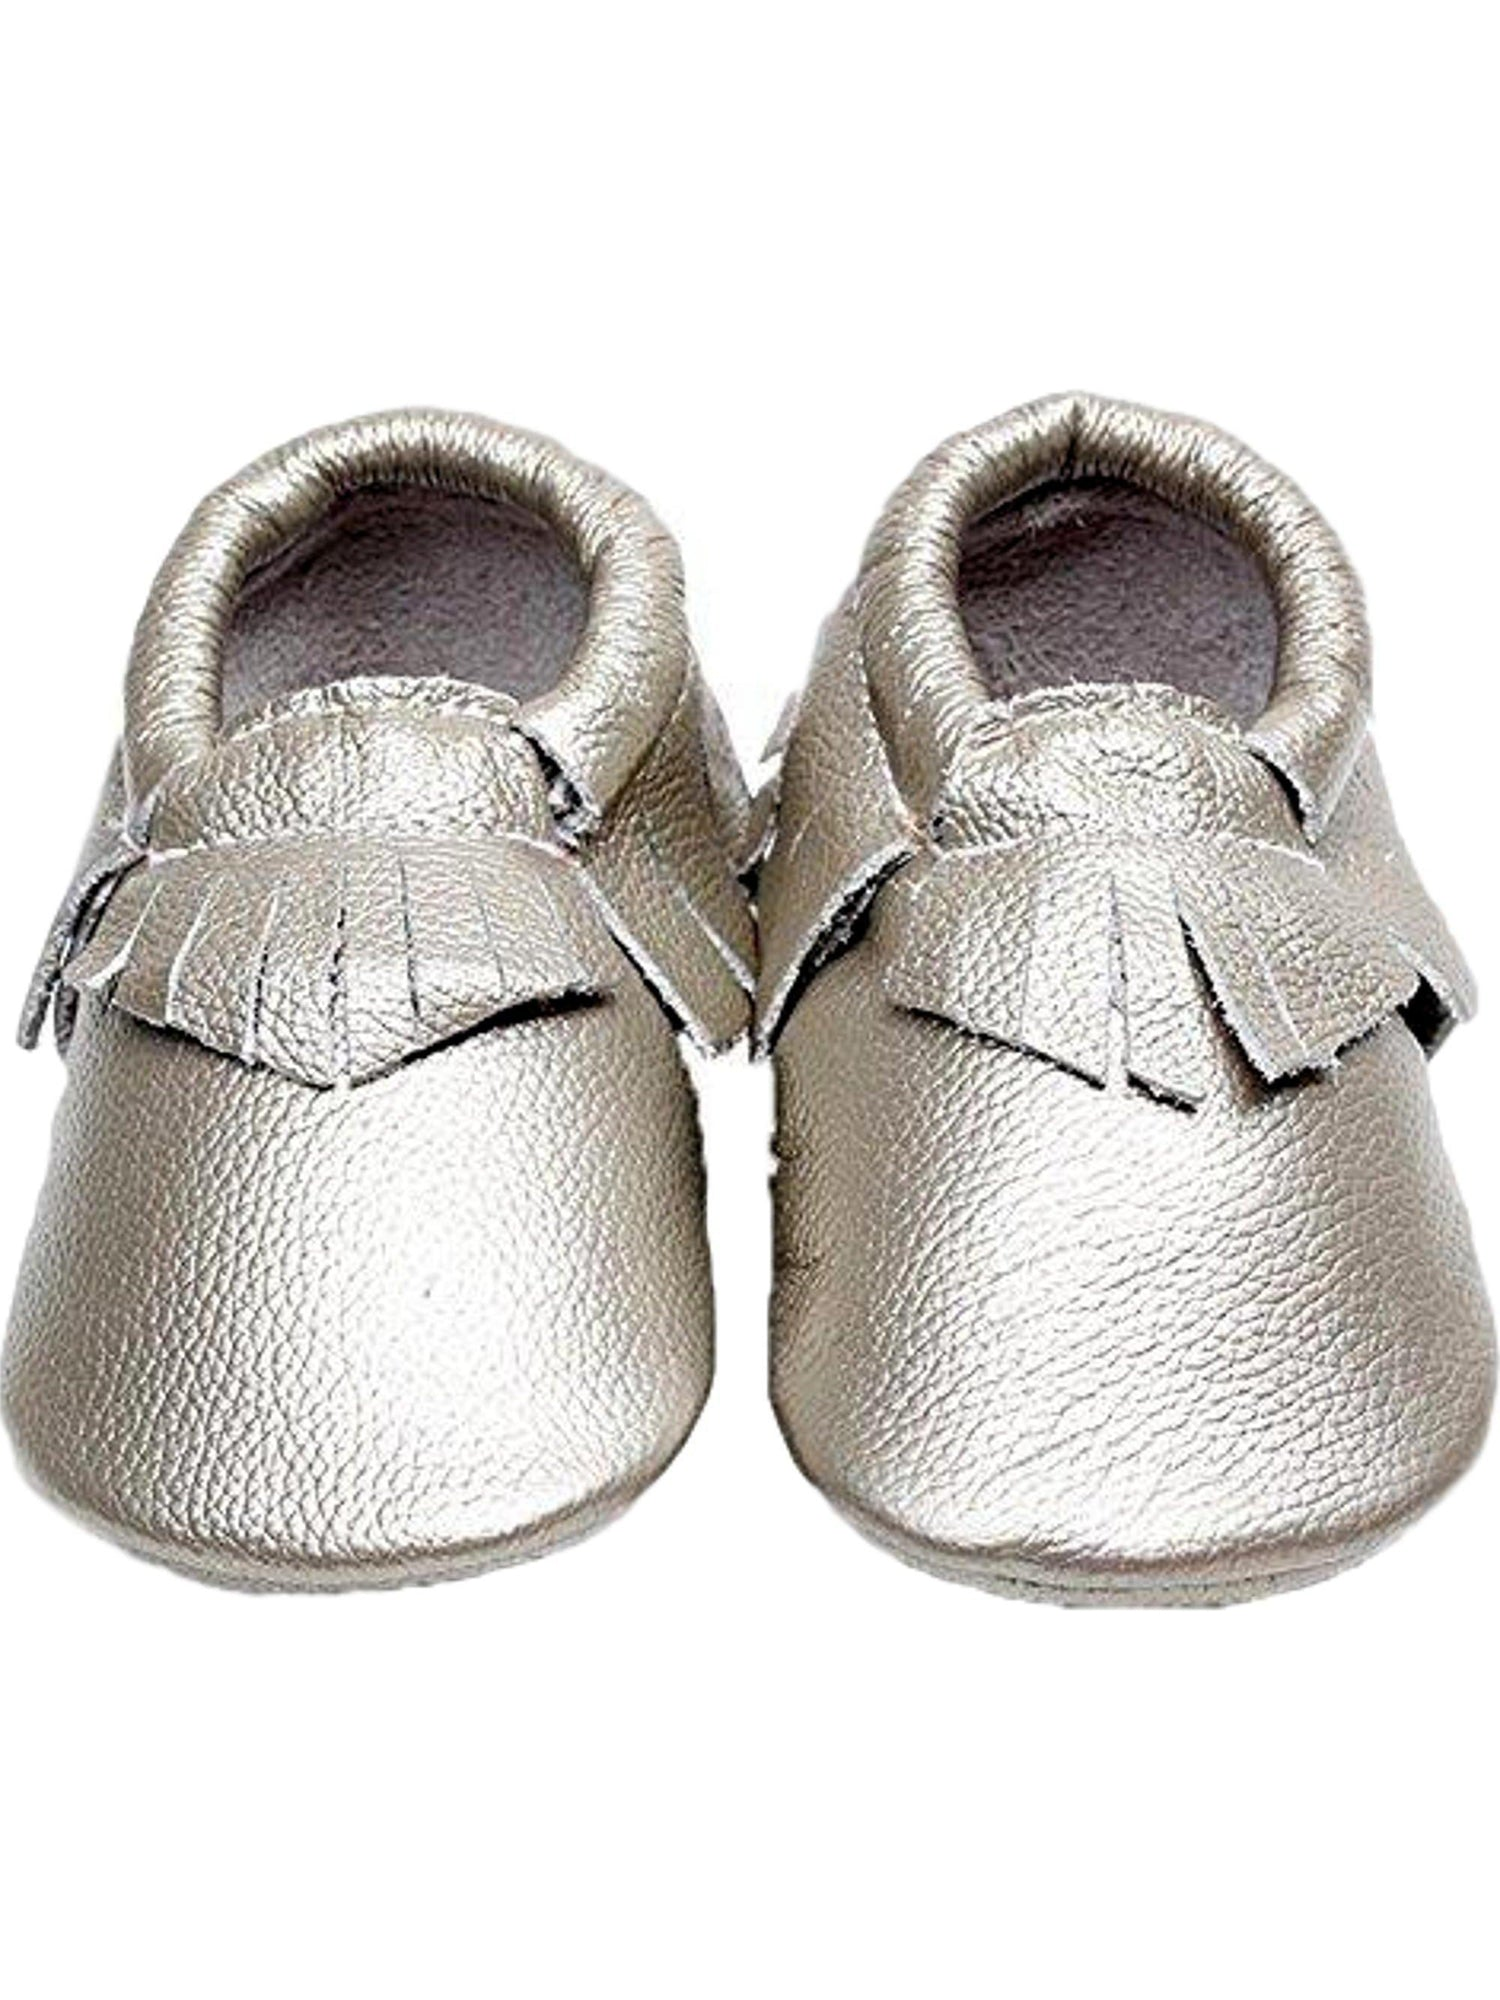 Baby Leather Moccasins Silver